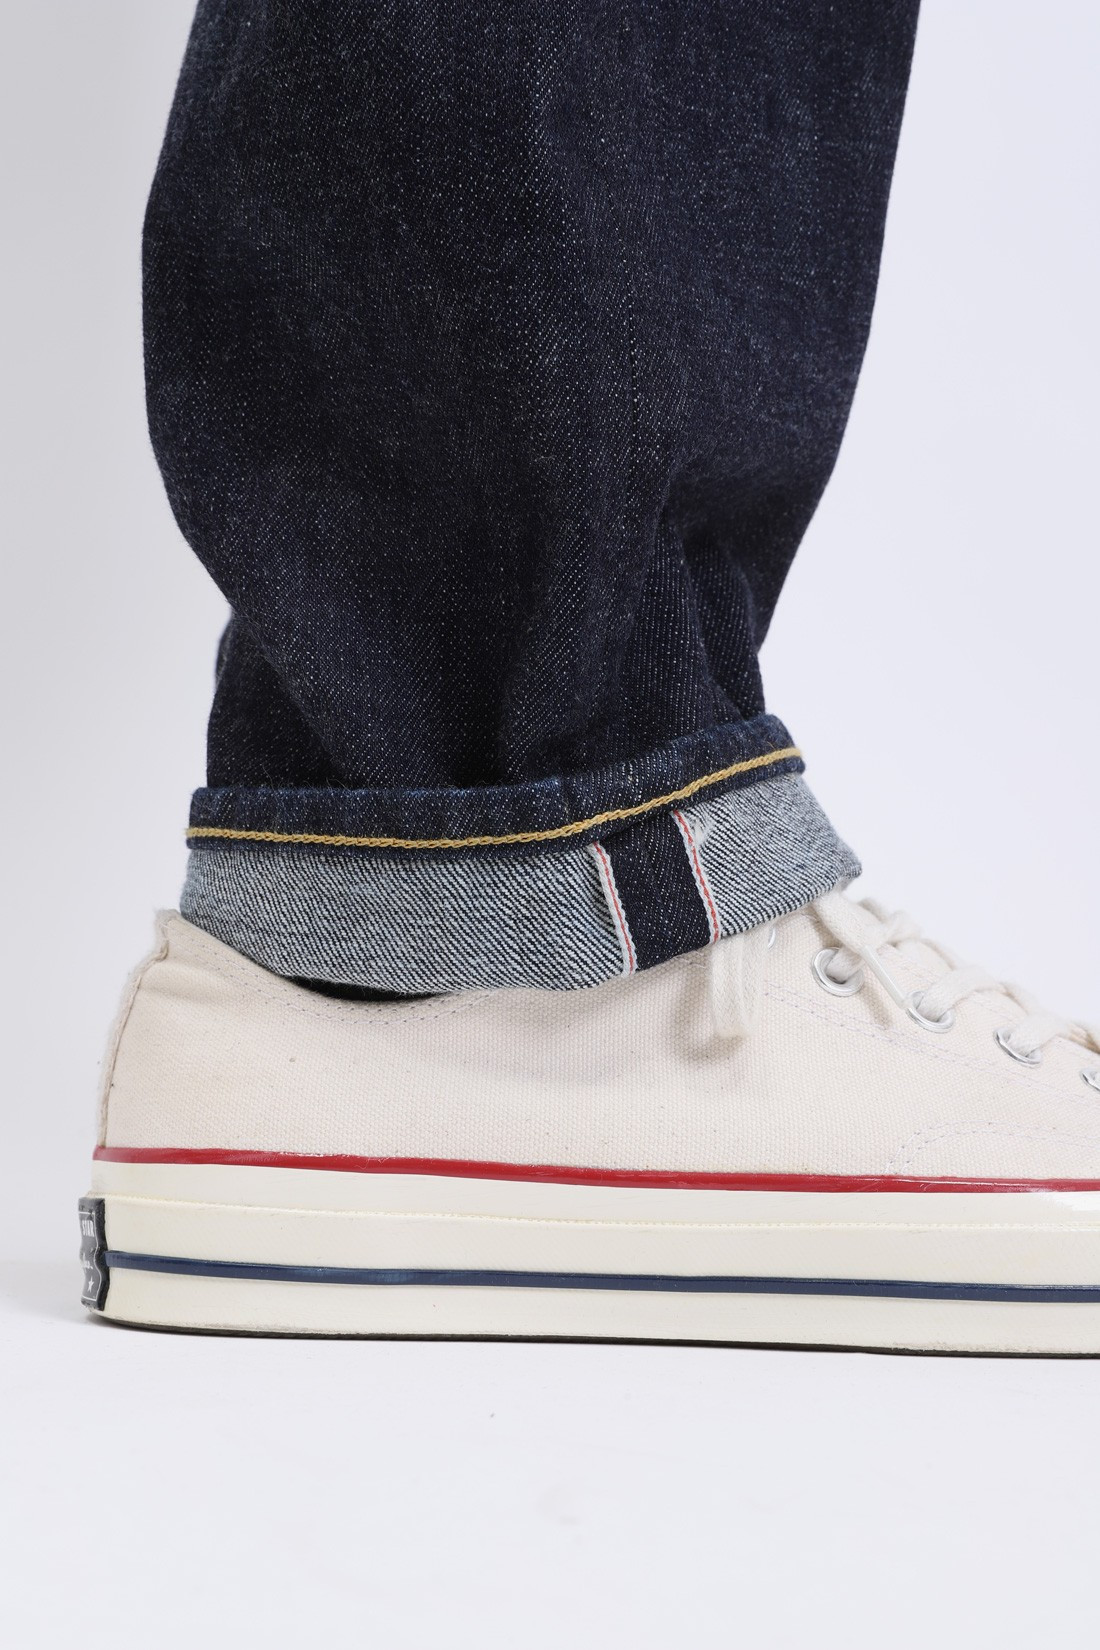 EDWIN / Ed-45 red listed selvedge Blue rinsed